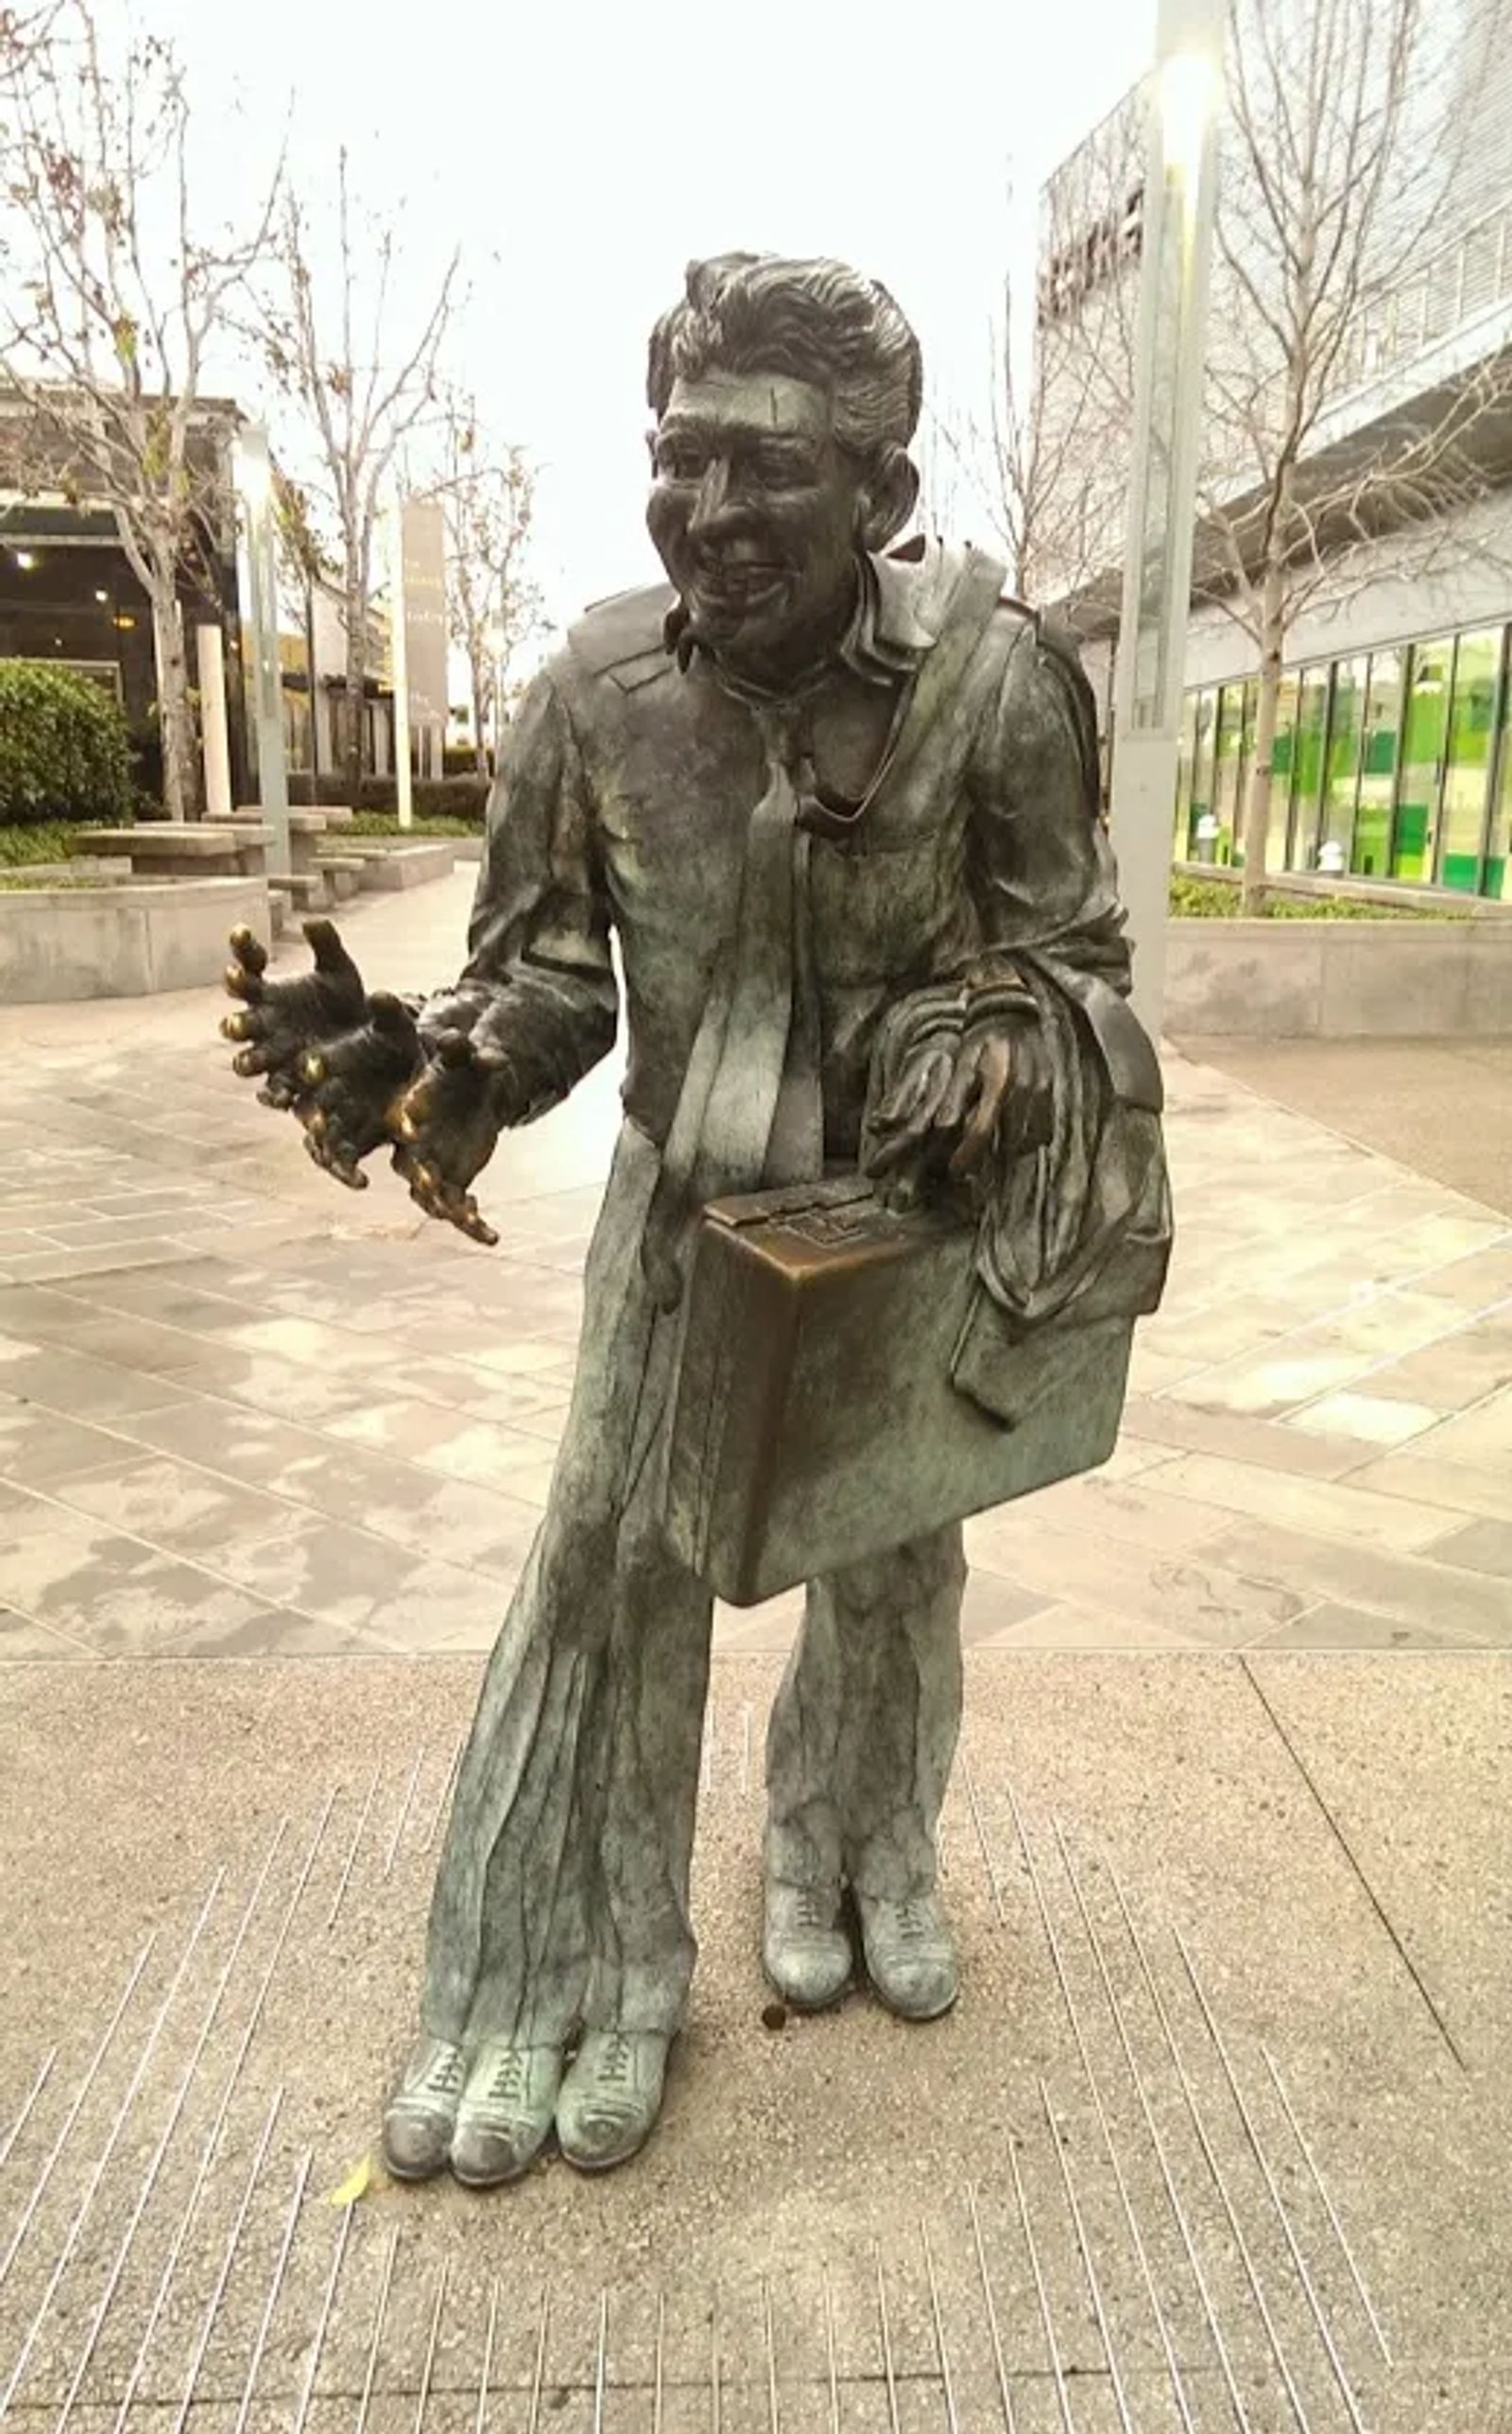 Photo of The shaking man statue in San Francisco, California